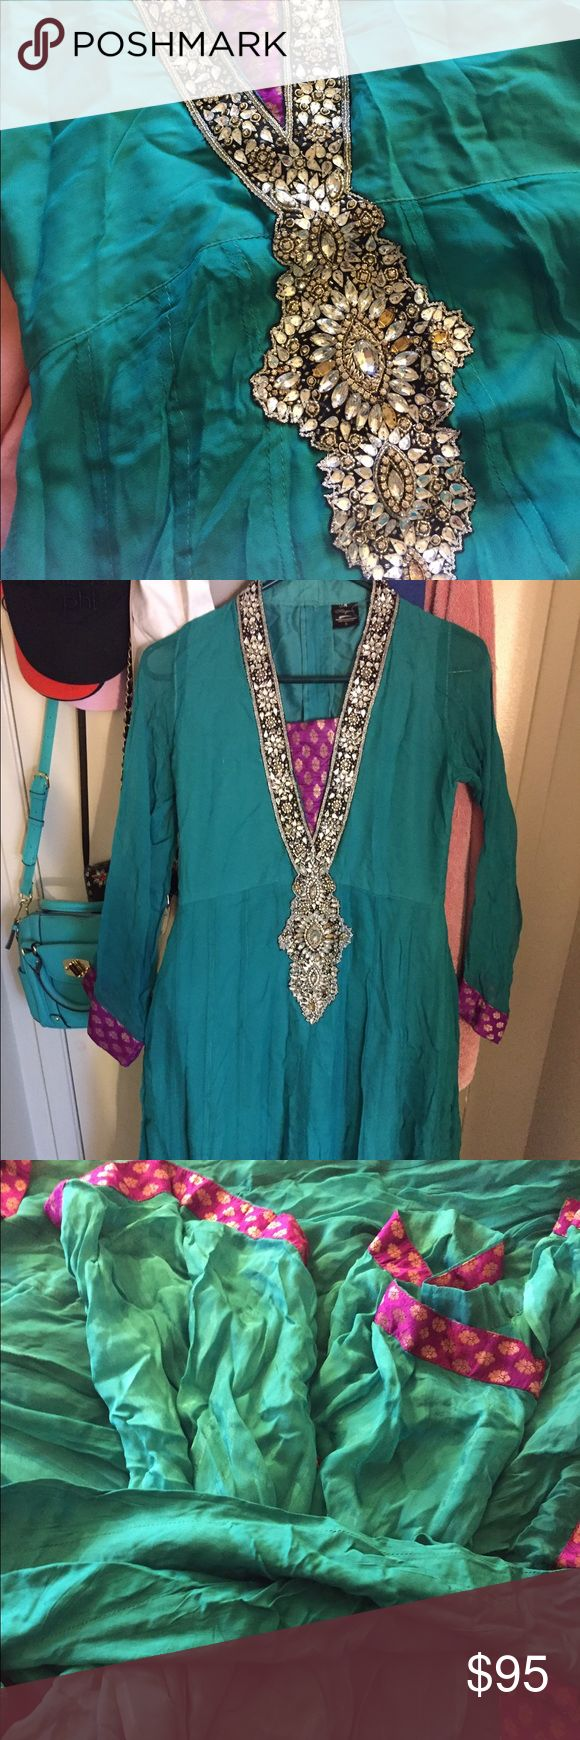 Traditional Anarkali dress full set Selling emerald green/aqua with gold and silve details traditional Pakistani anarkali dress that comes with pajamas and dupatta( scarf). Worn few times, missing few emeralds on the top. maysoon Dresses Wedding